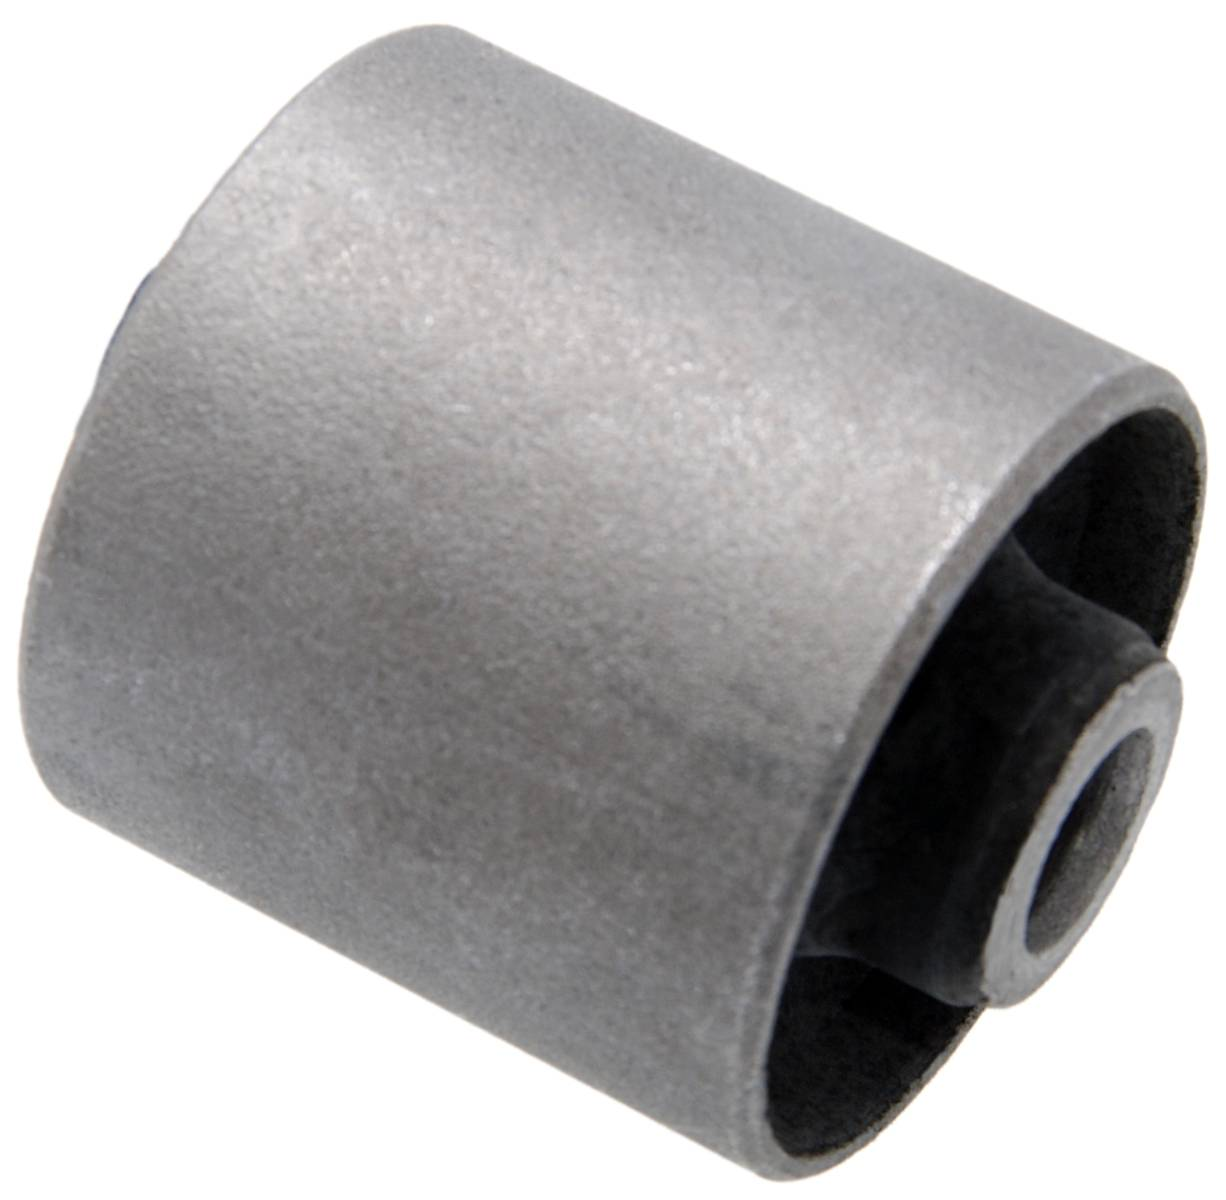 Febest 2011 Lexus LX570 - Suspension Trailing Arm Bushing FEBEST # TAB-479 OEM # 48710-60121 at Sears.com